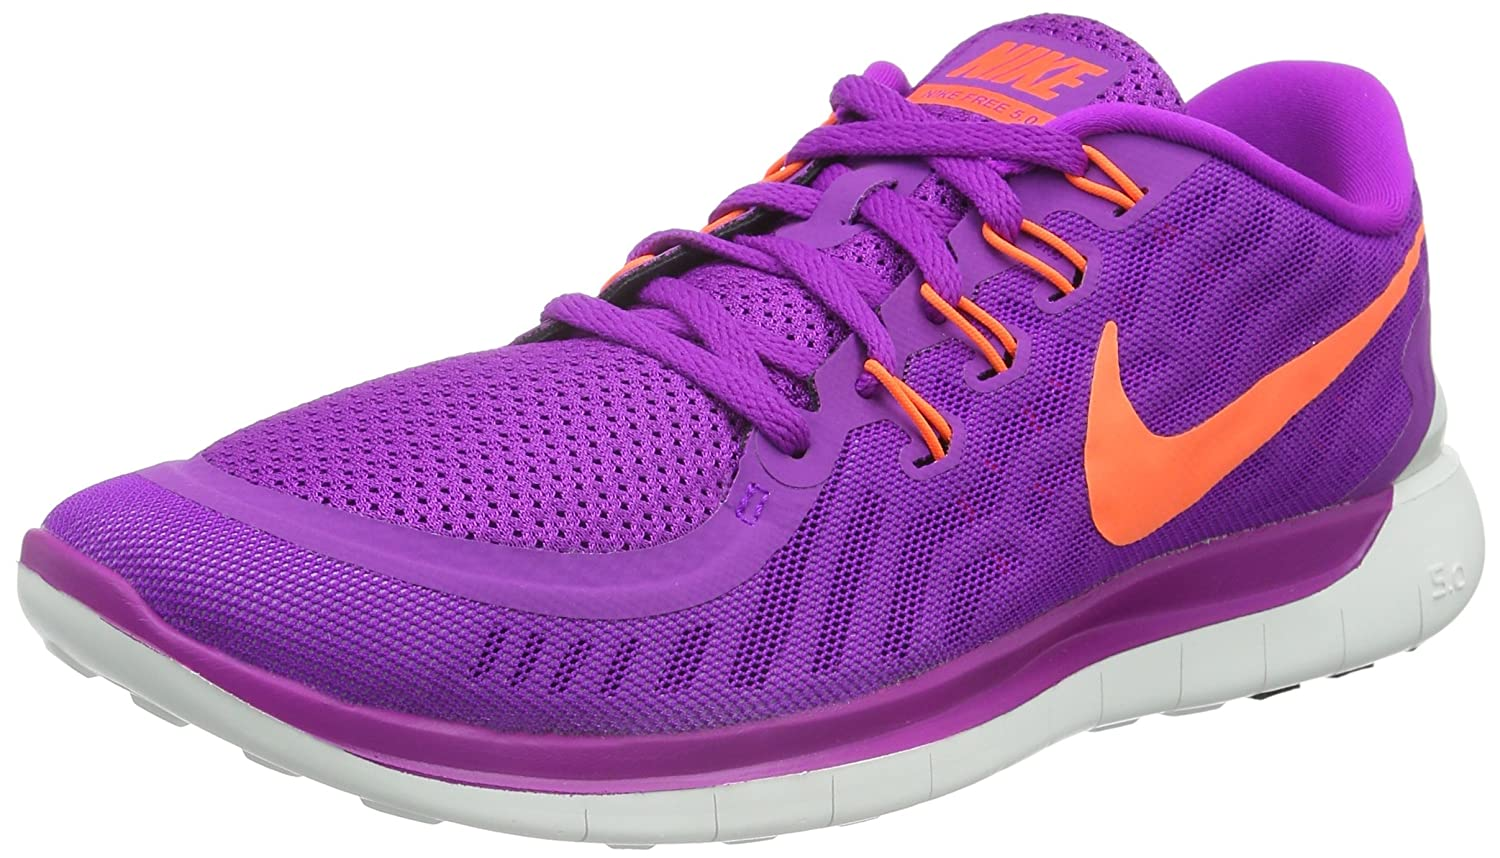 quality design fd025 7ca79 Amazon.com  Nike Womens Free Running Shoe  Road Running